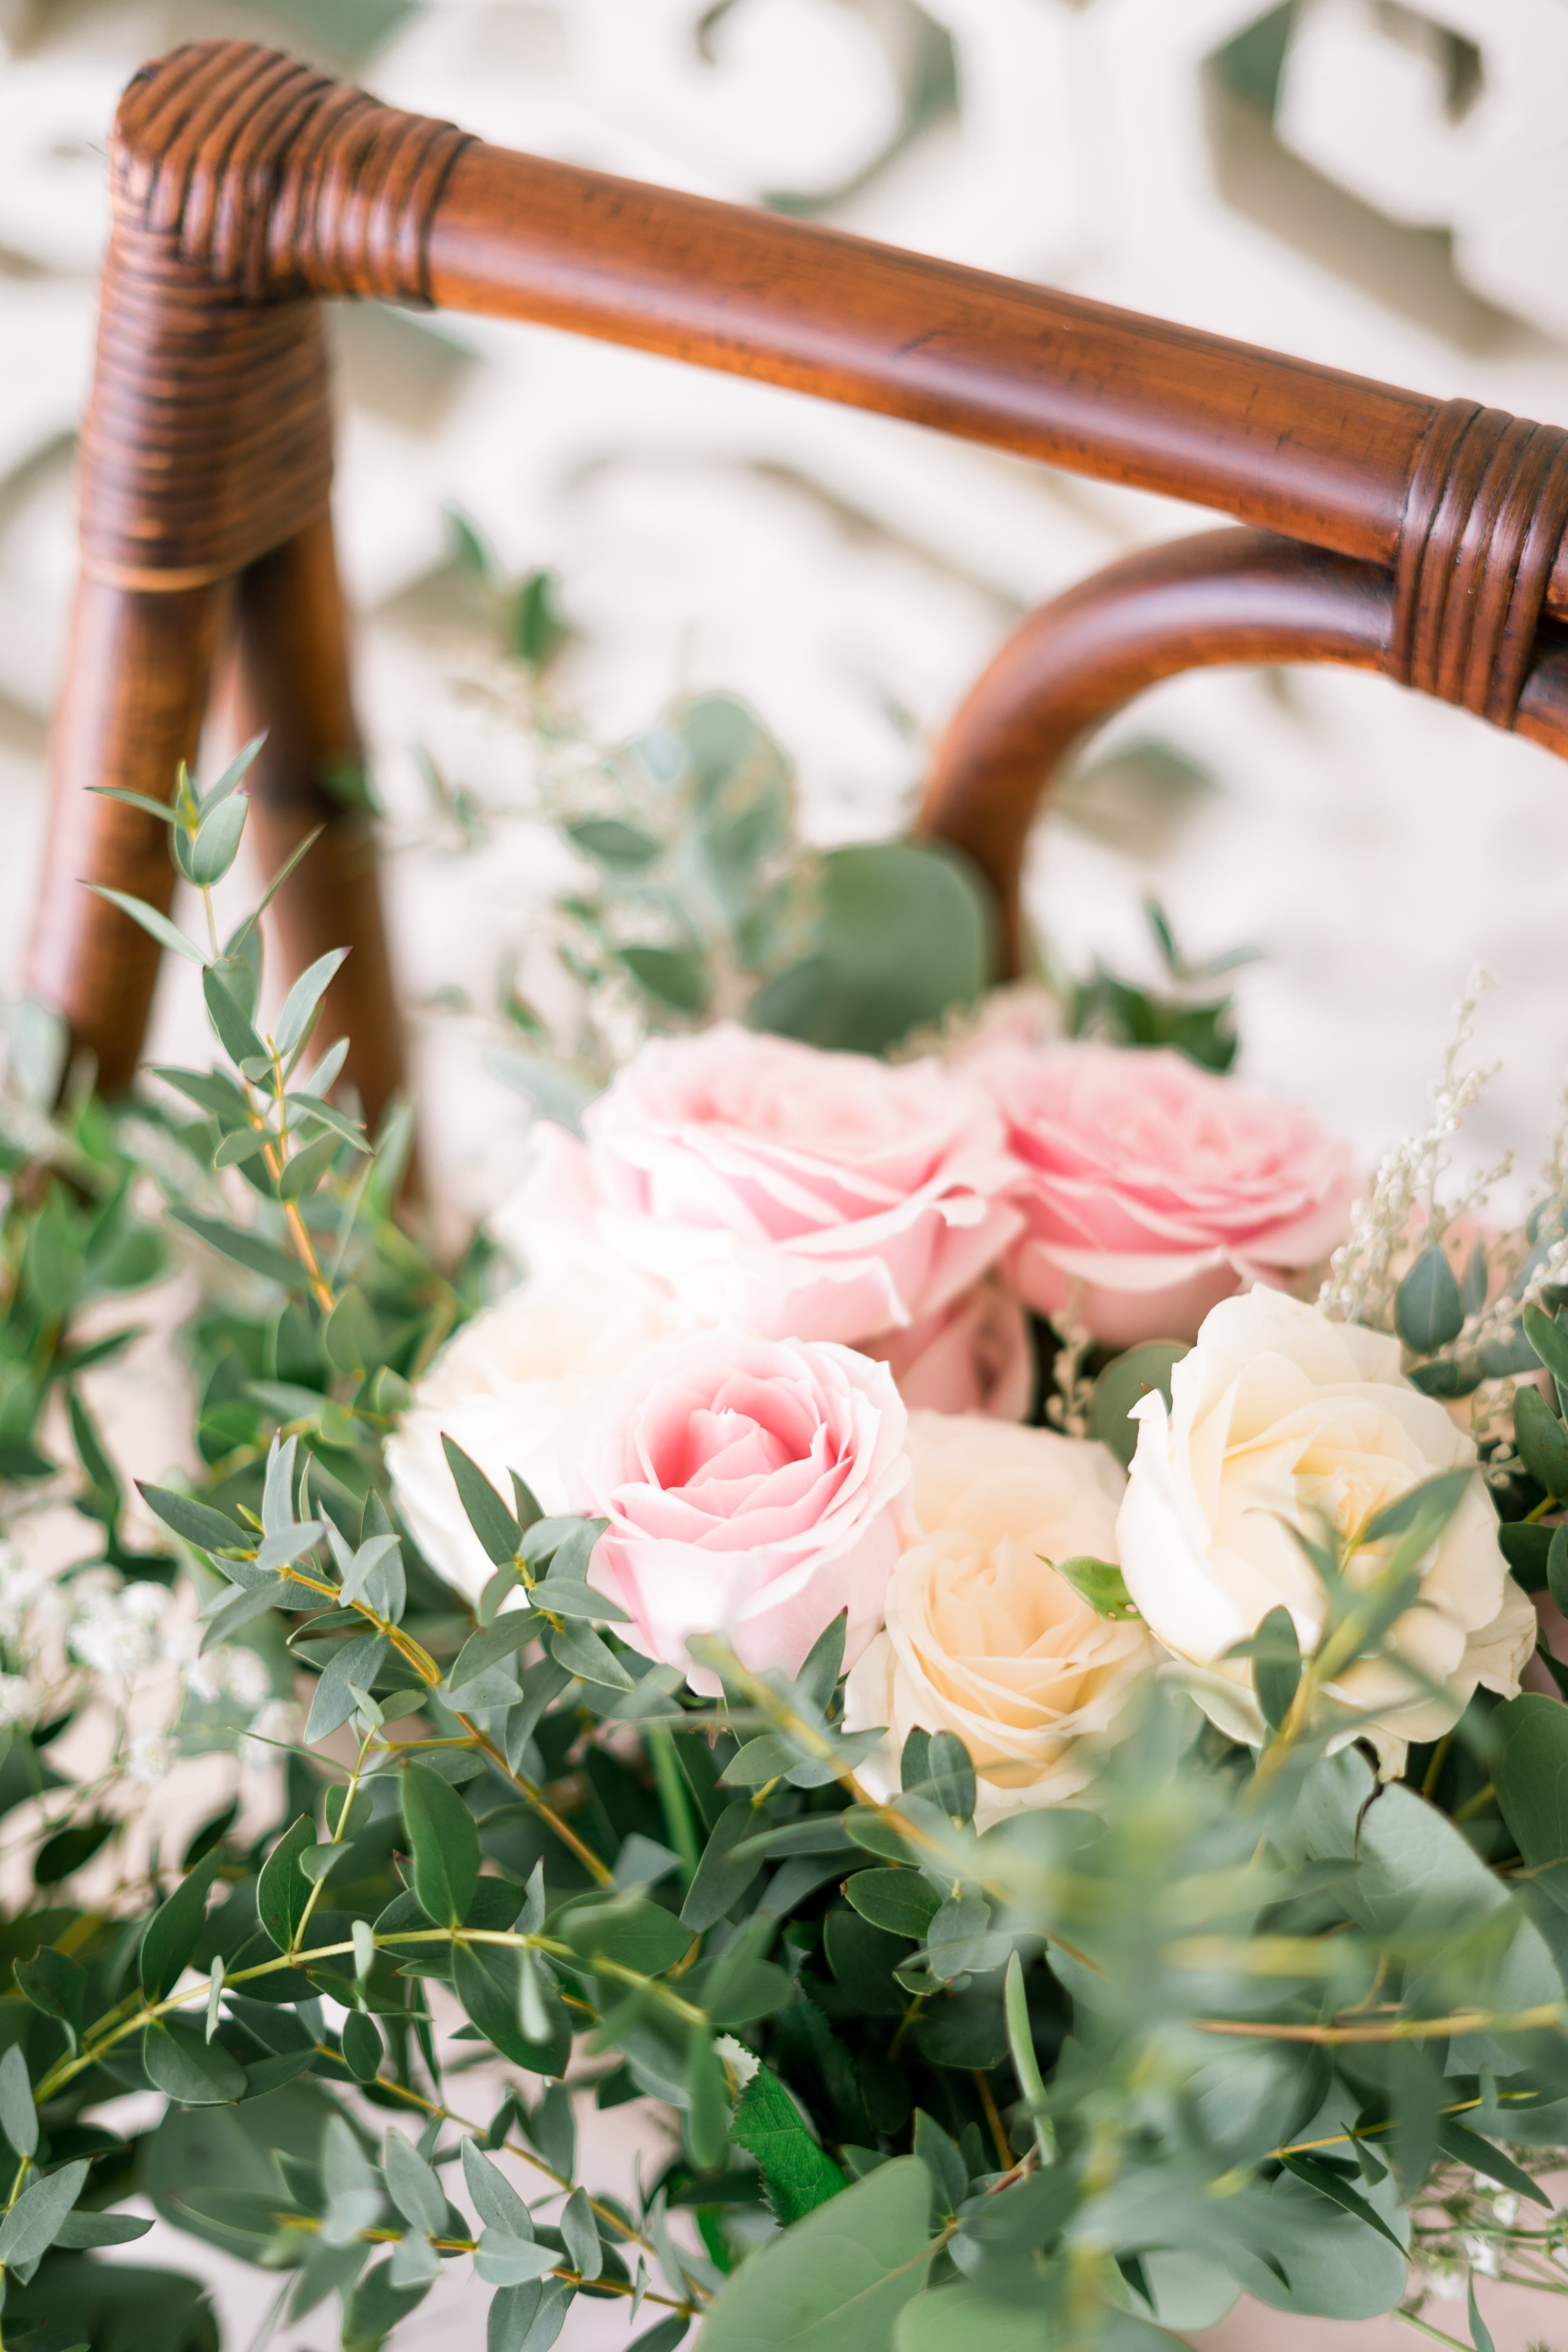 Selective Focus Photography of White-and-pink Rose Flowers in Basket